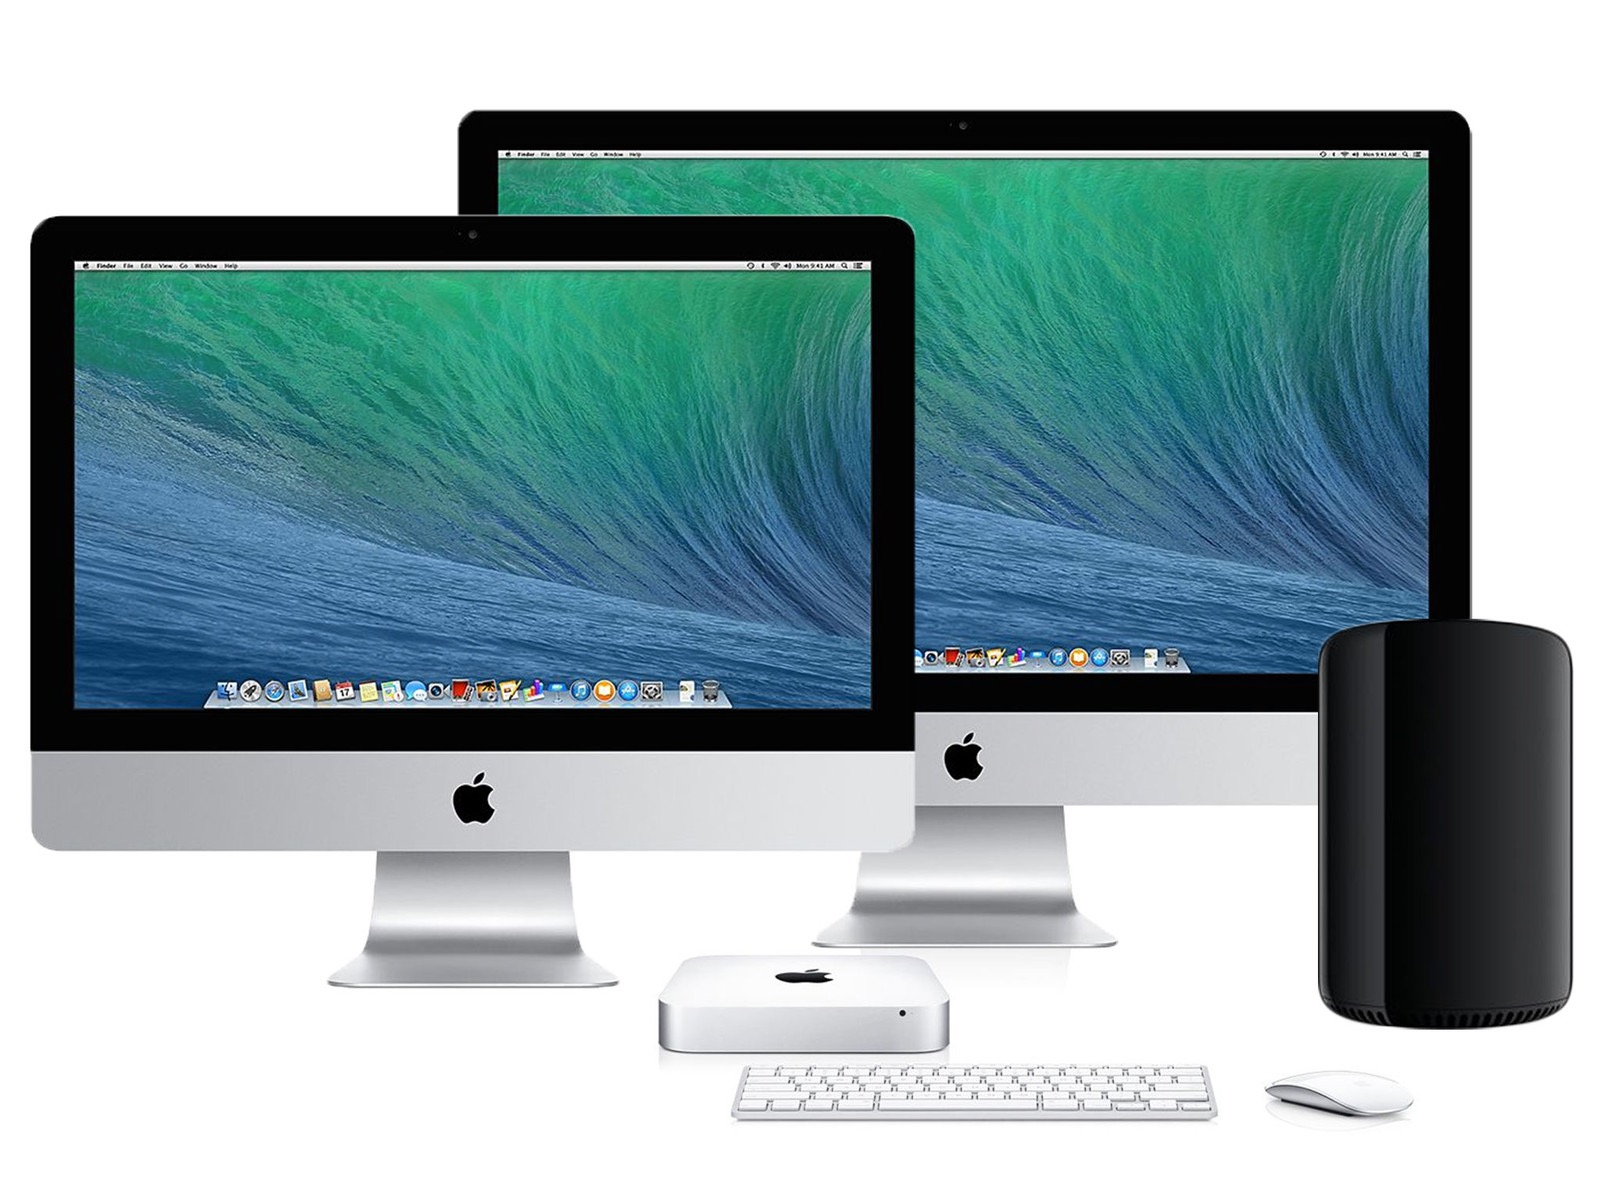 Macs are much cheaper than PCs in the long run says IBM